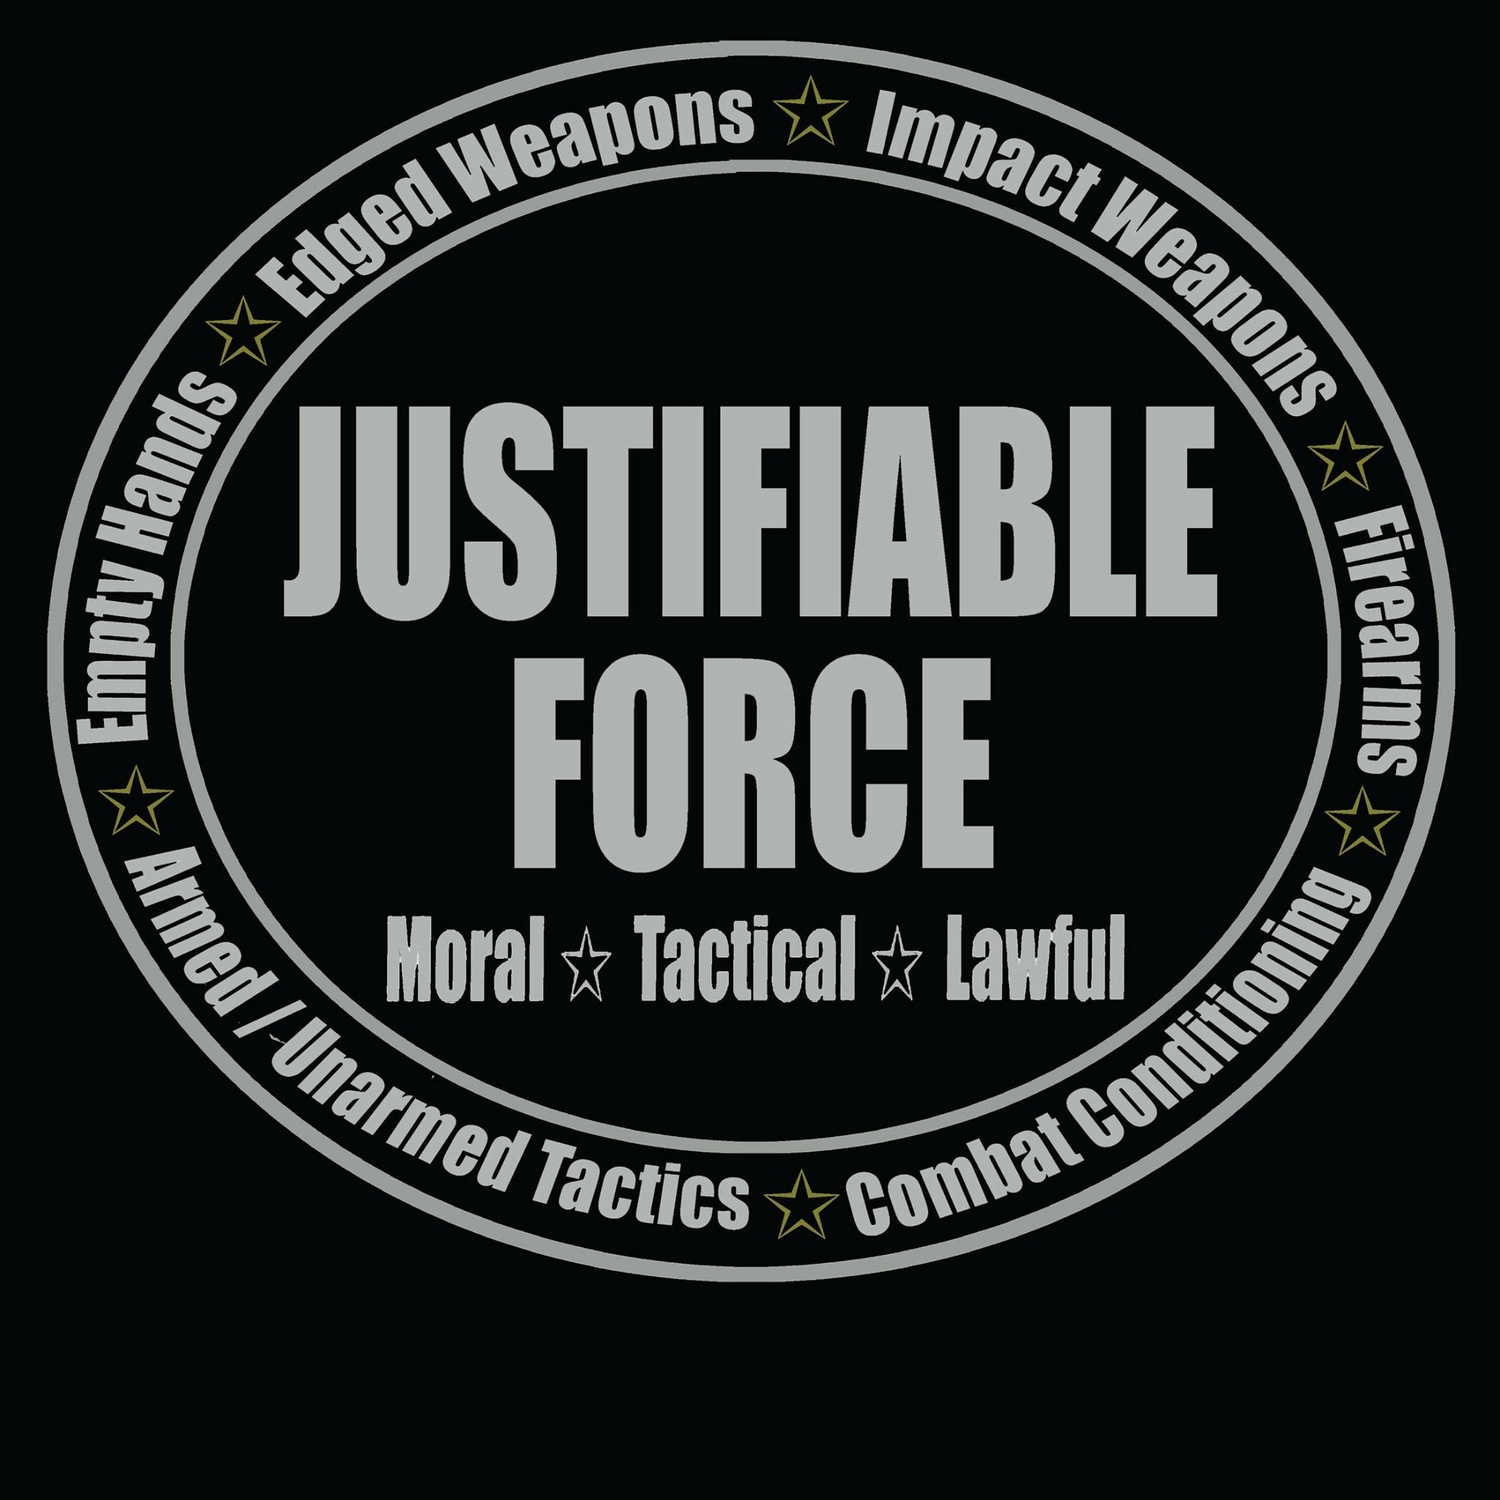 Justifiable Force